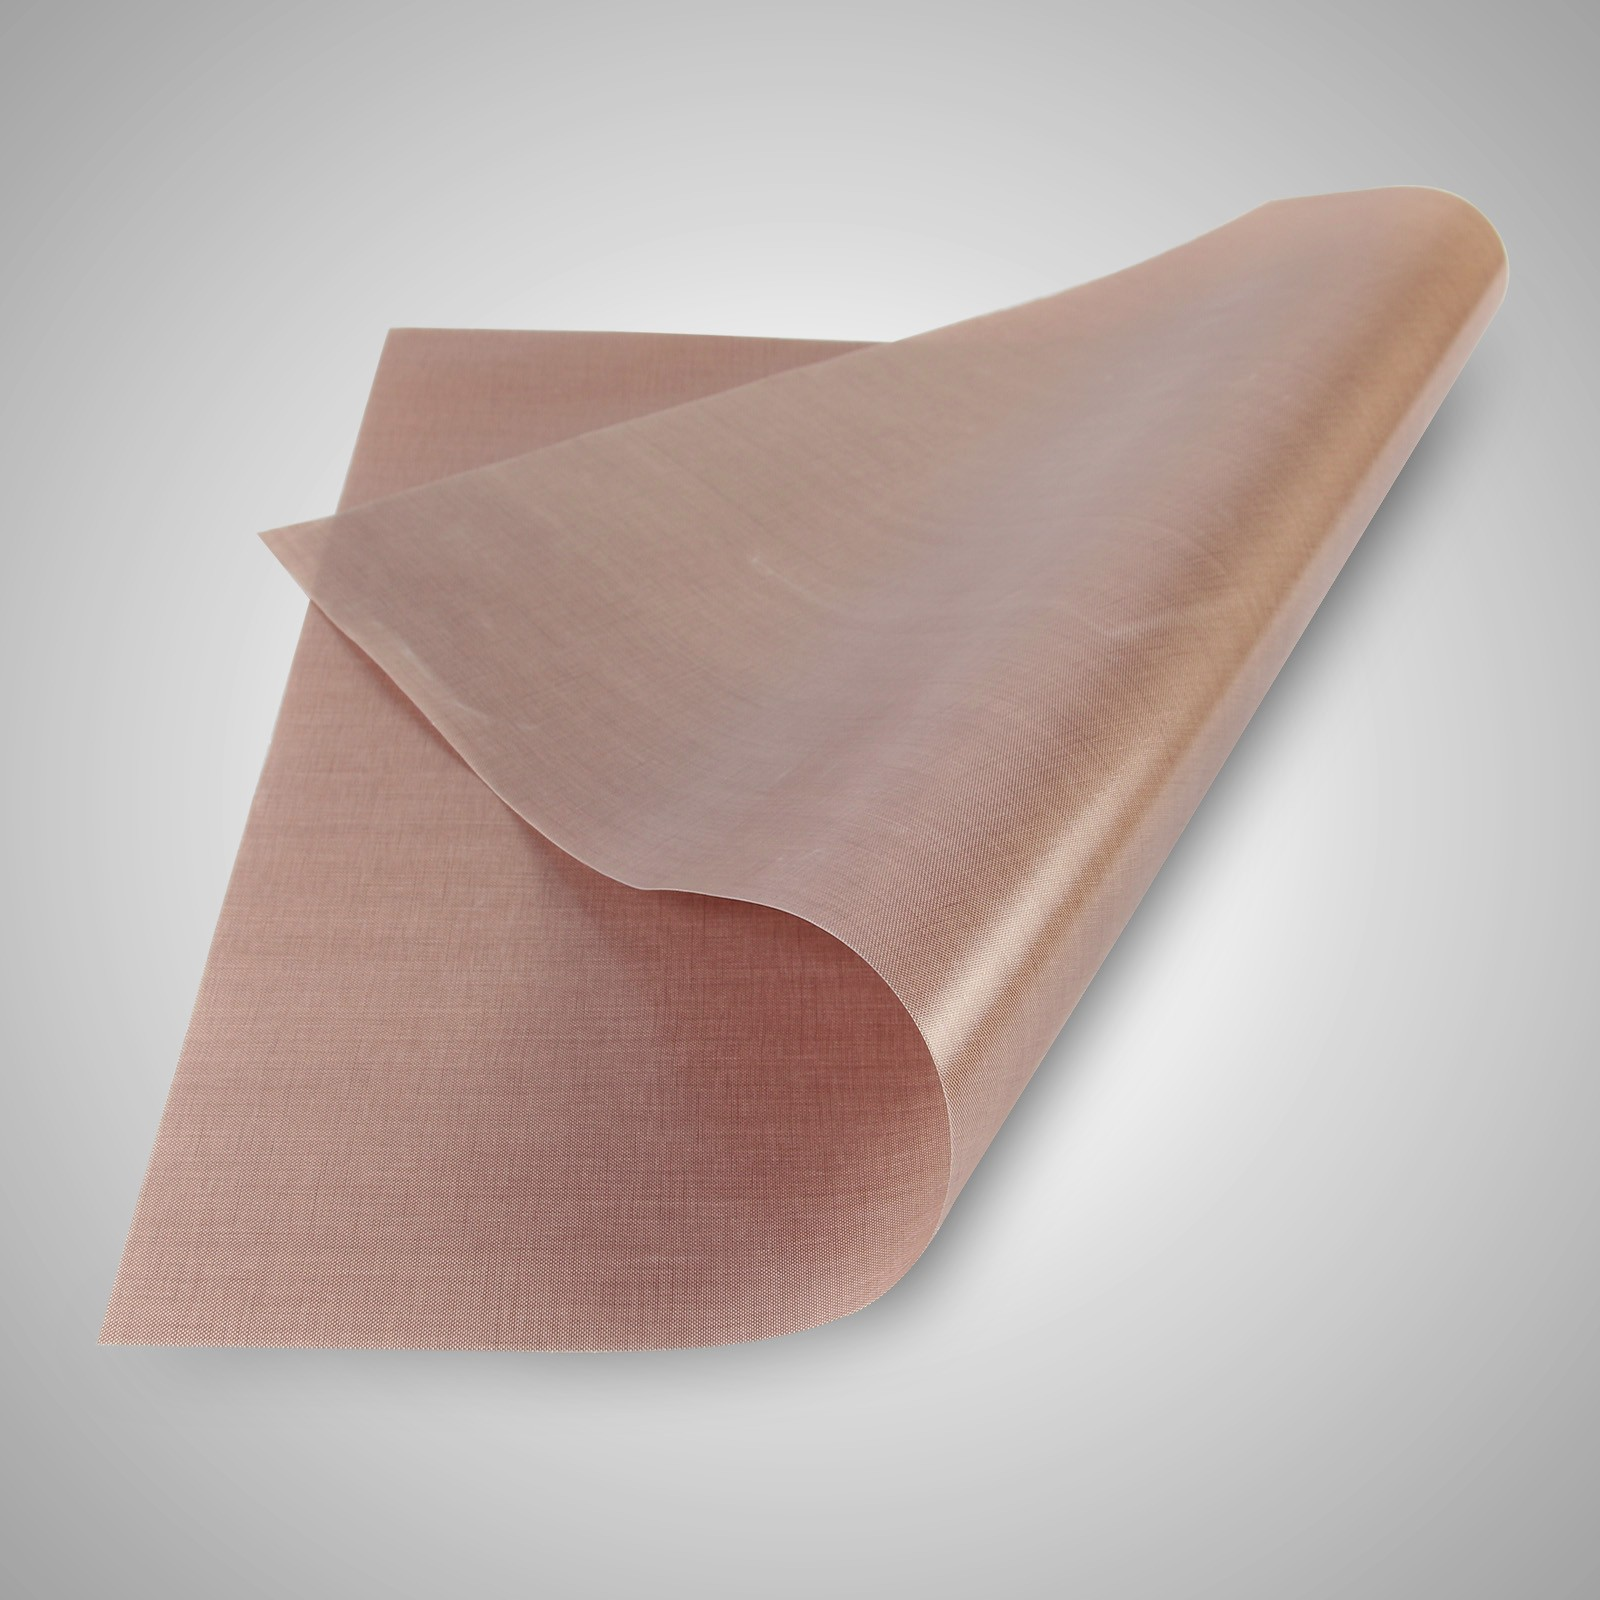 Teflon Sheet for use with Heat Press